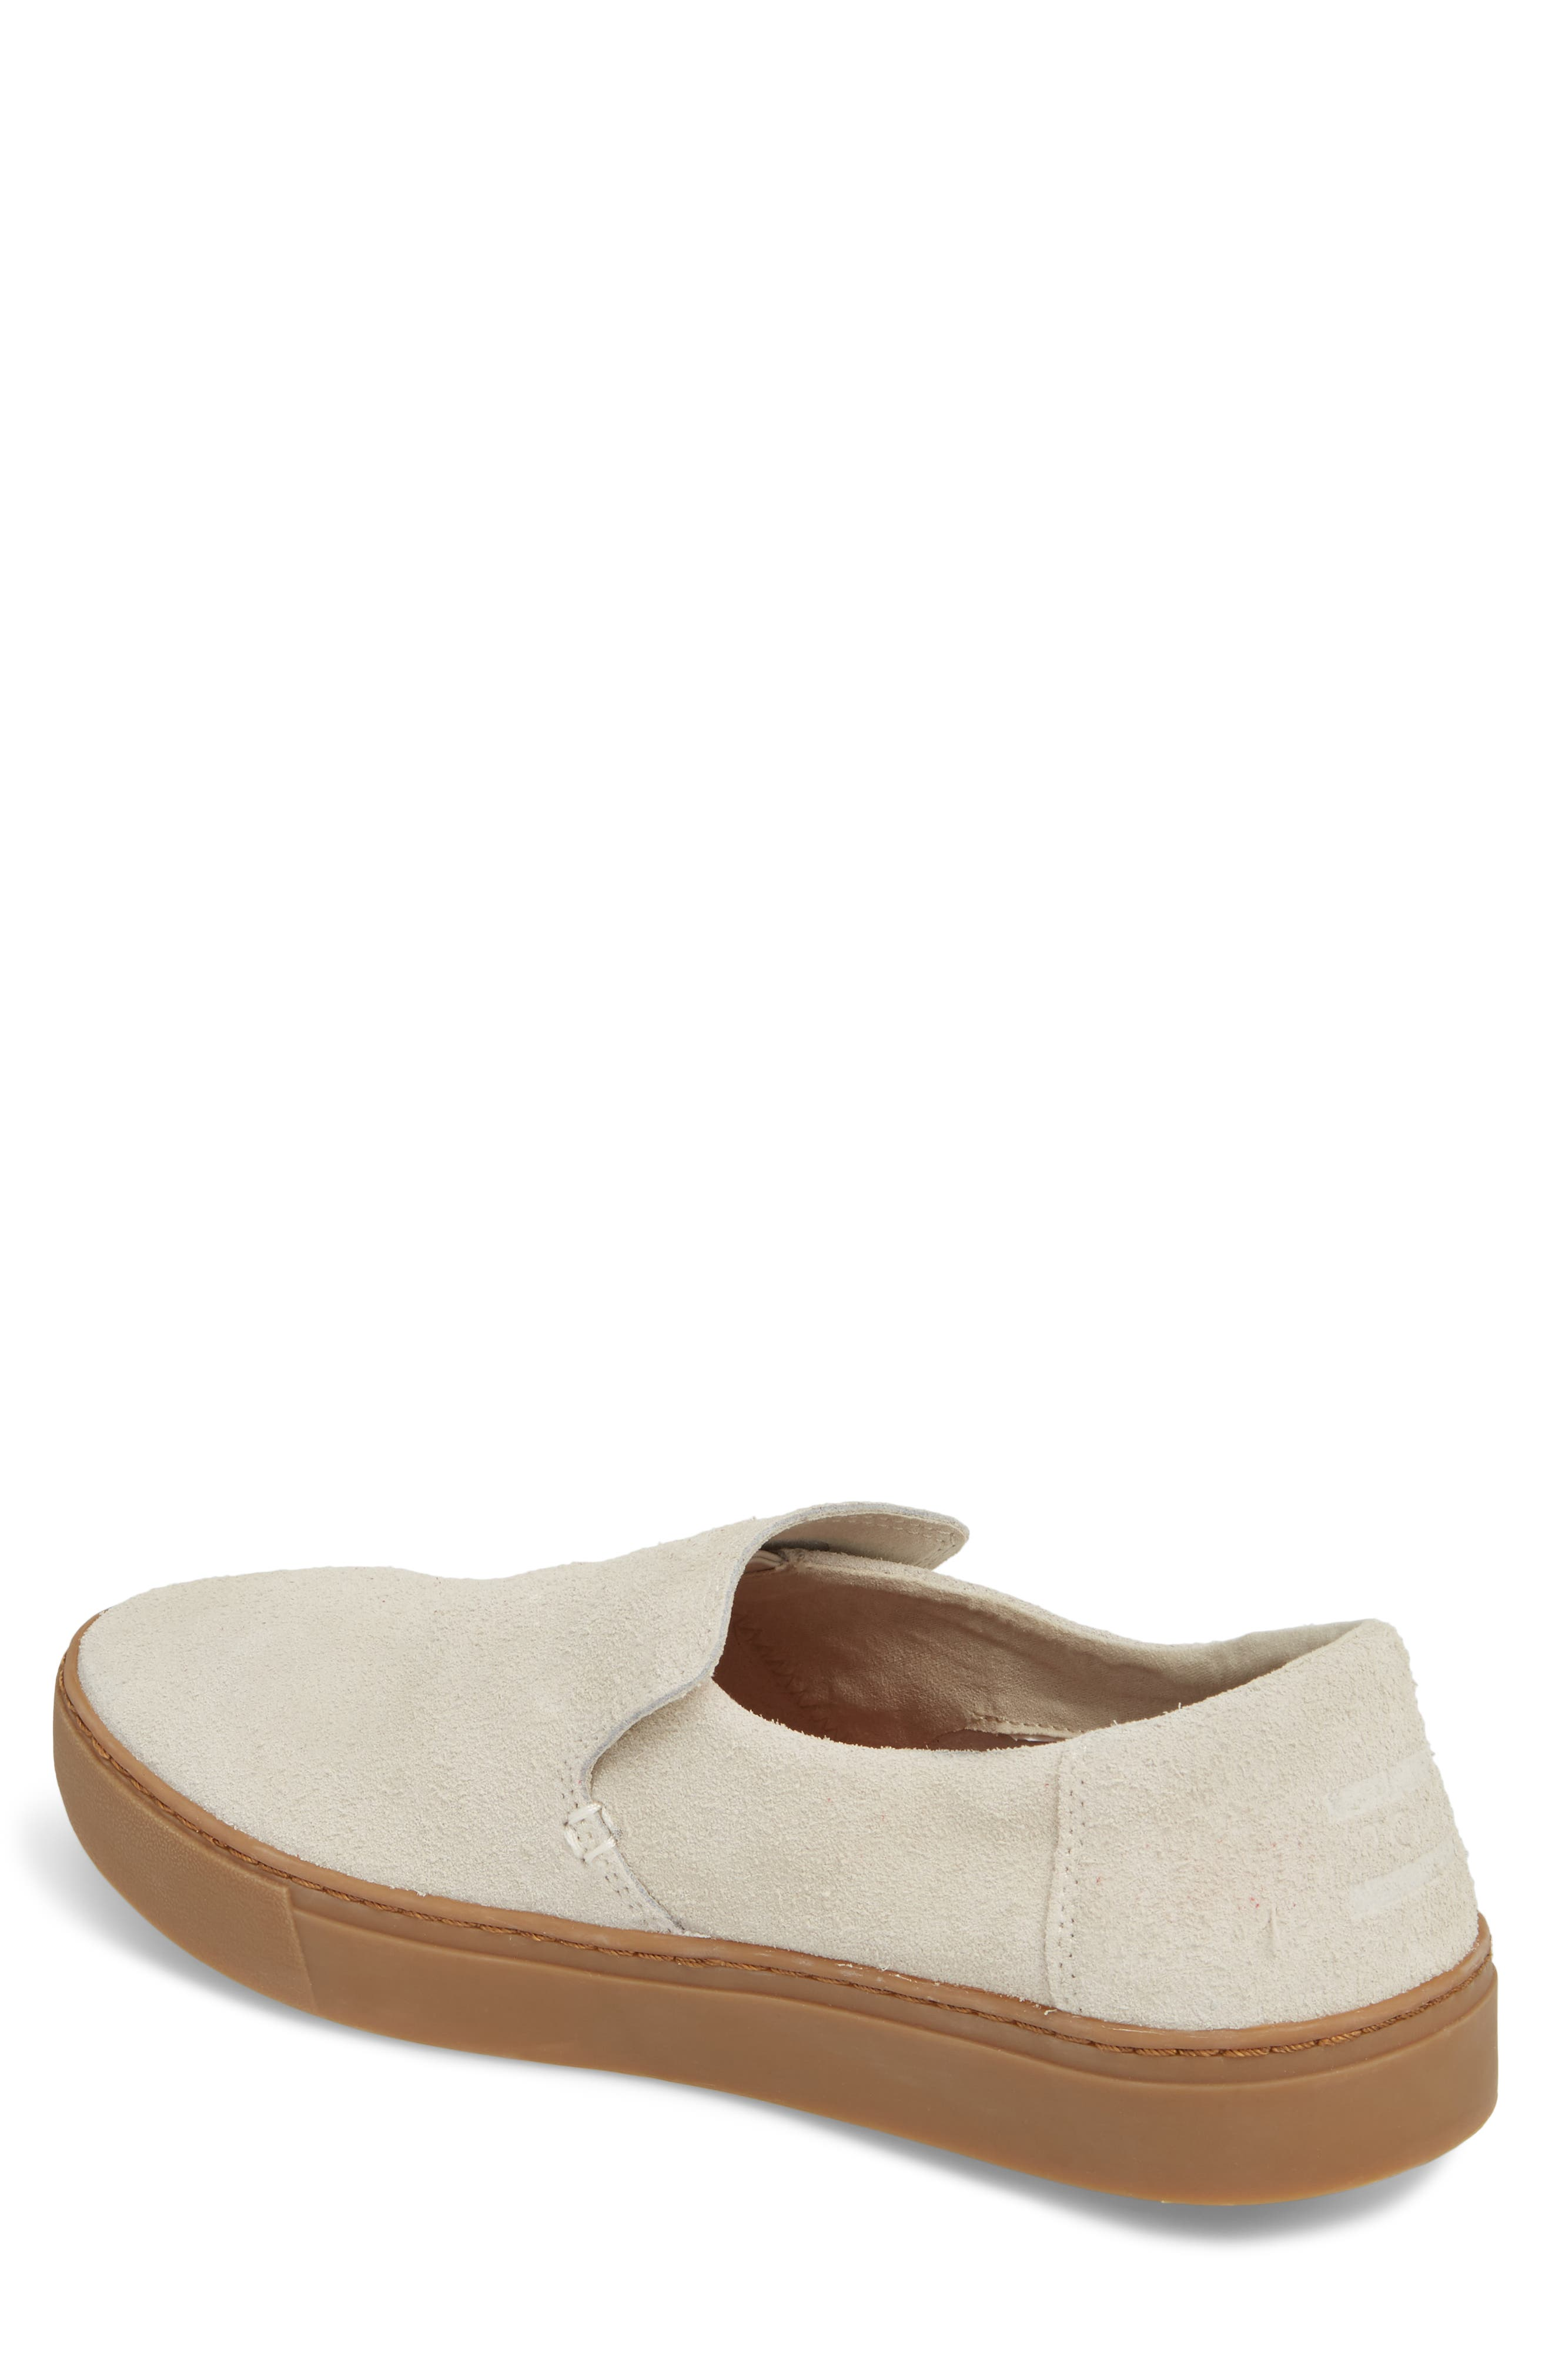 Loma Slip-On Sneaker,                             Alternate thumbnail 2, color,                             Birch Shaggy Suede/ Gum